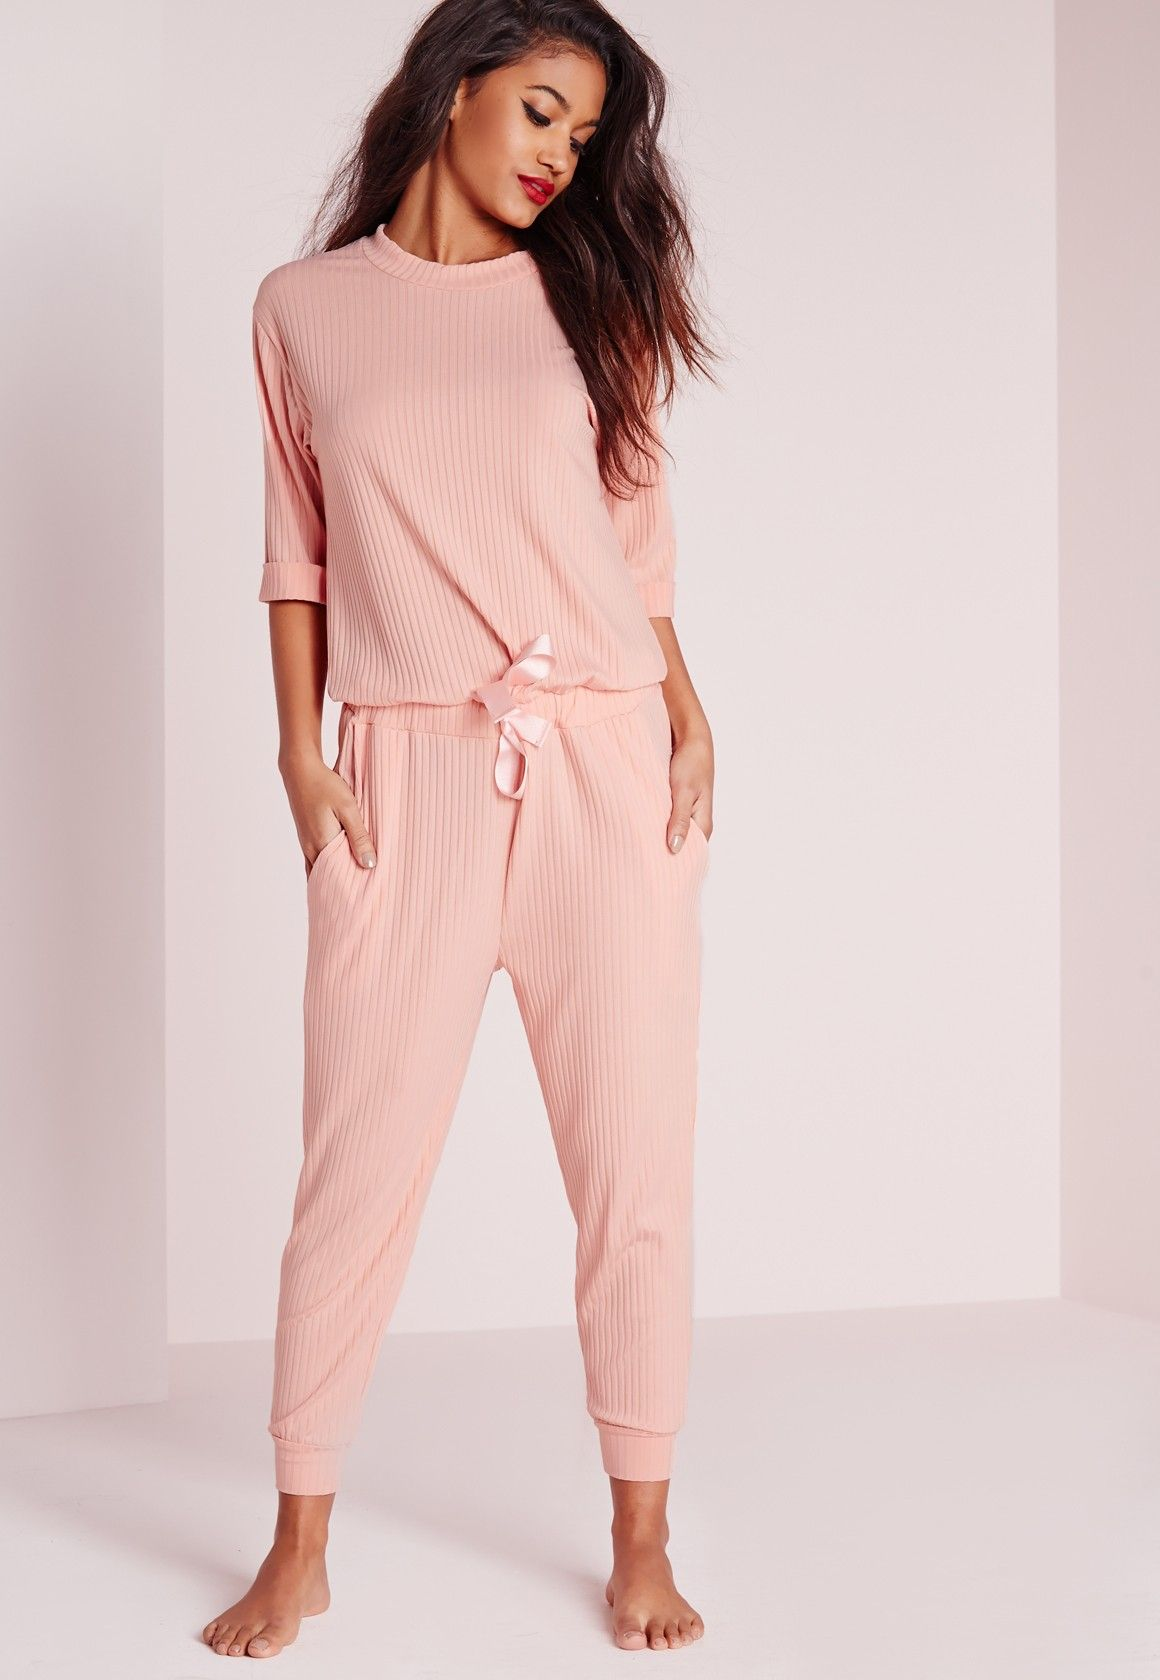 Missguided - Ribbed Slouch Loungewear Onesie Pink Loungewear Jumpsuit 73f0ef2e4